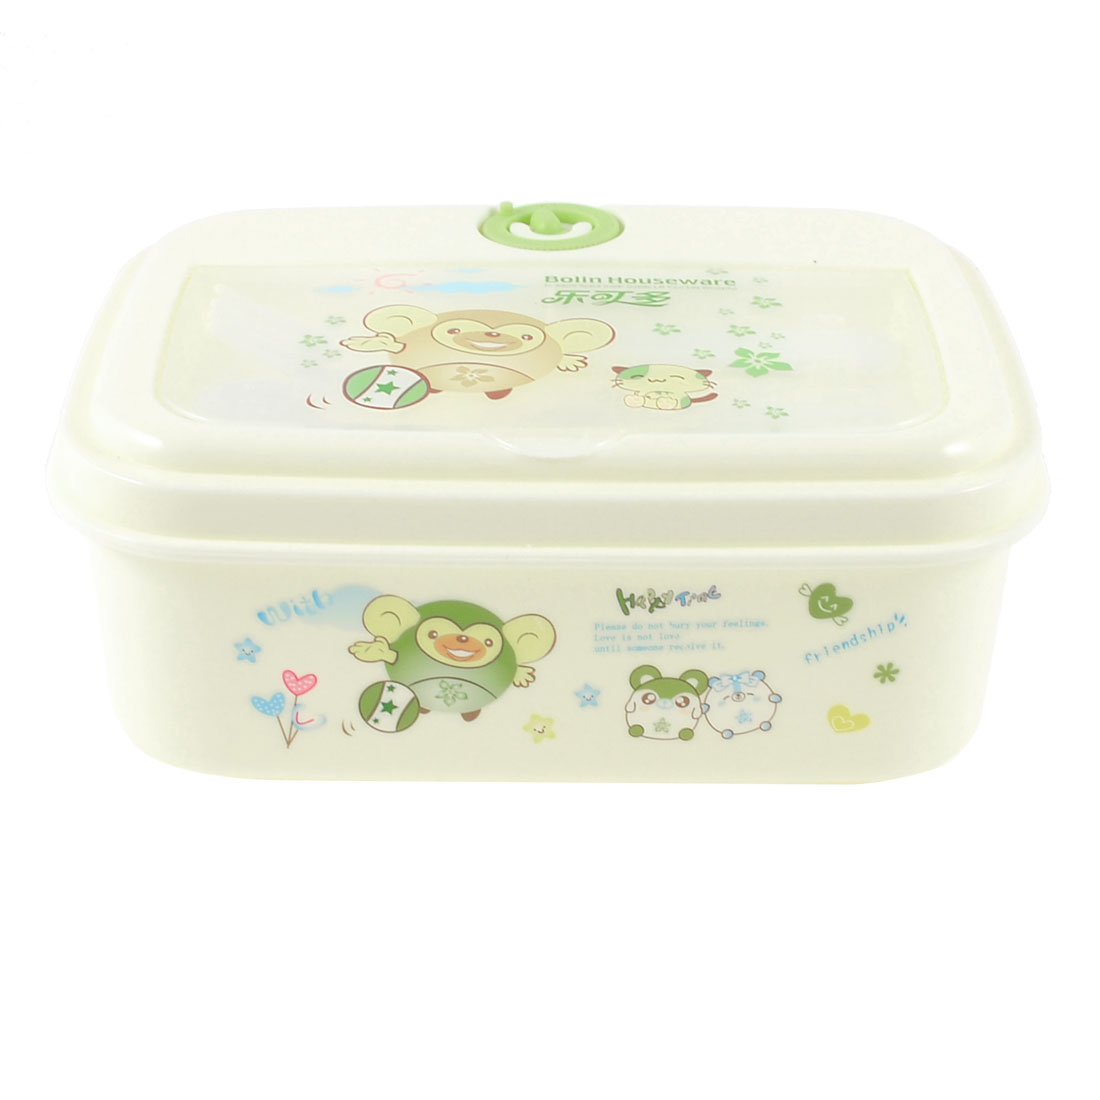 Home Kitchen Cartoon Printed Hole Design Lunch Box Green Off White w Spoon Fork